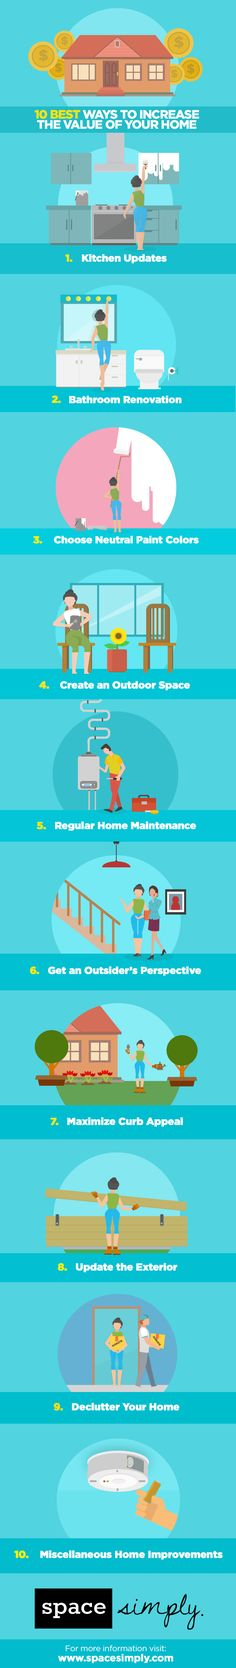 *10 Best Ways to Increase the Value of Your Home (infographic)* Looking to make home improvements that will maximize your home's value? Here are 10 of the best ways to do just that!